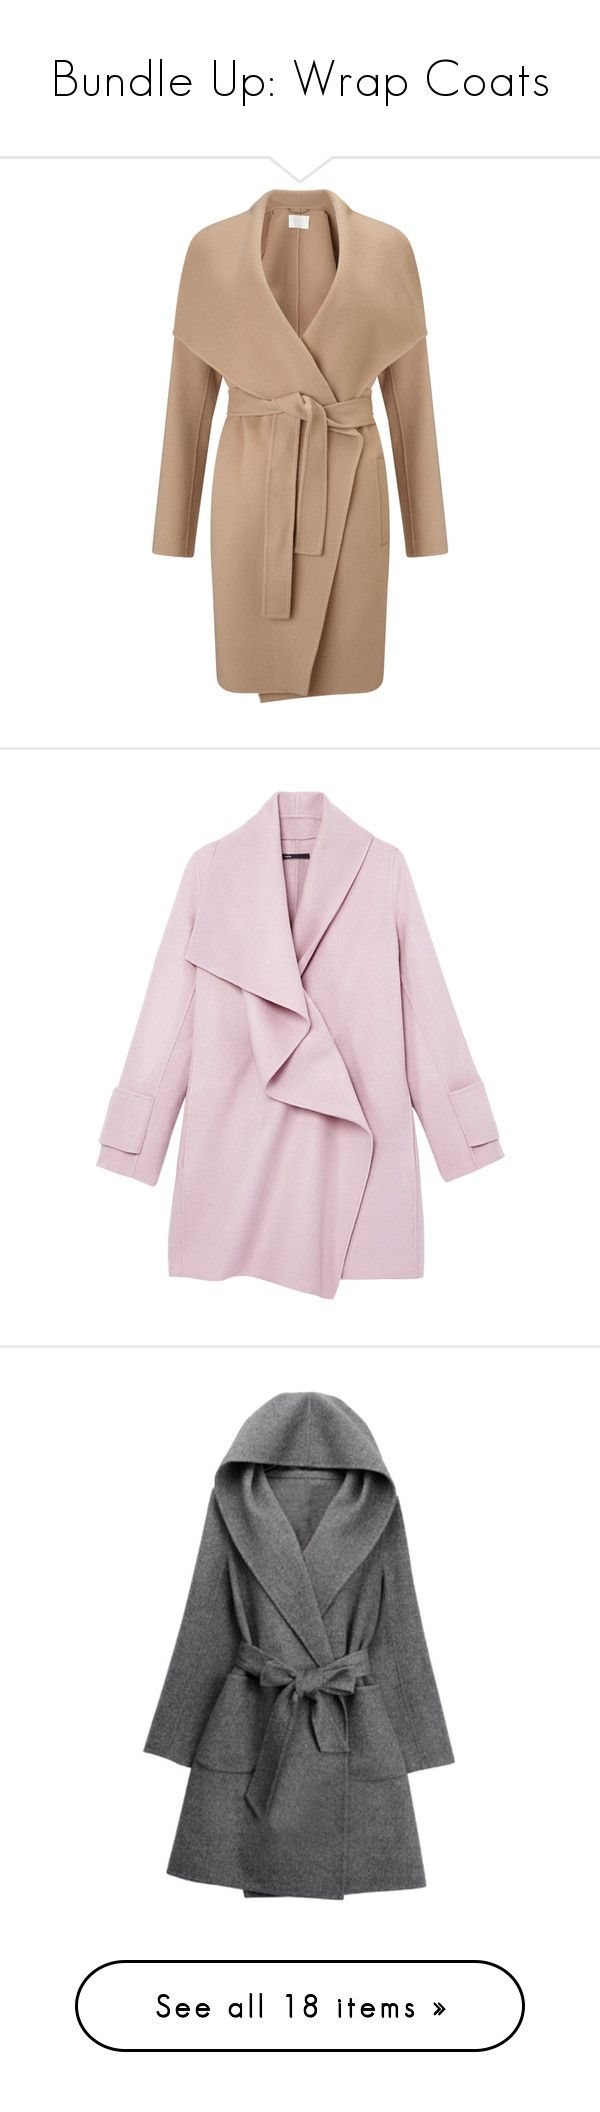 """""""Bundle Up: Wrap Coats"""" by polyvore-editorial ❤ liked on Polyvore featuring wrapcoats, outerwear, coats, wrap coat, camel wrap coat, tie belt, self tie belt, beige coat, jackets and coats & jackets"""